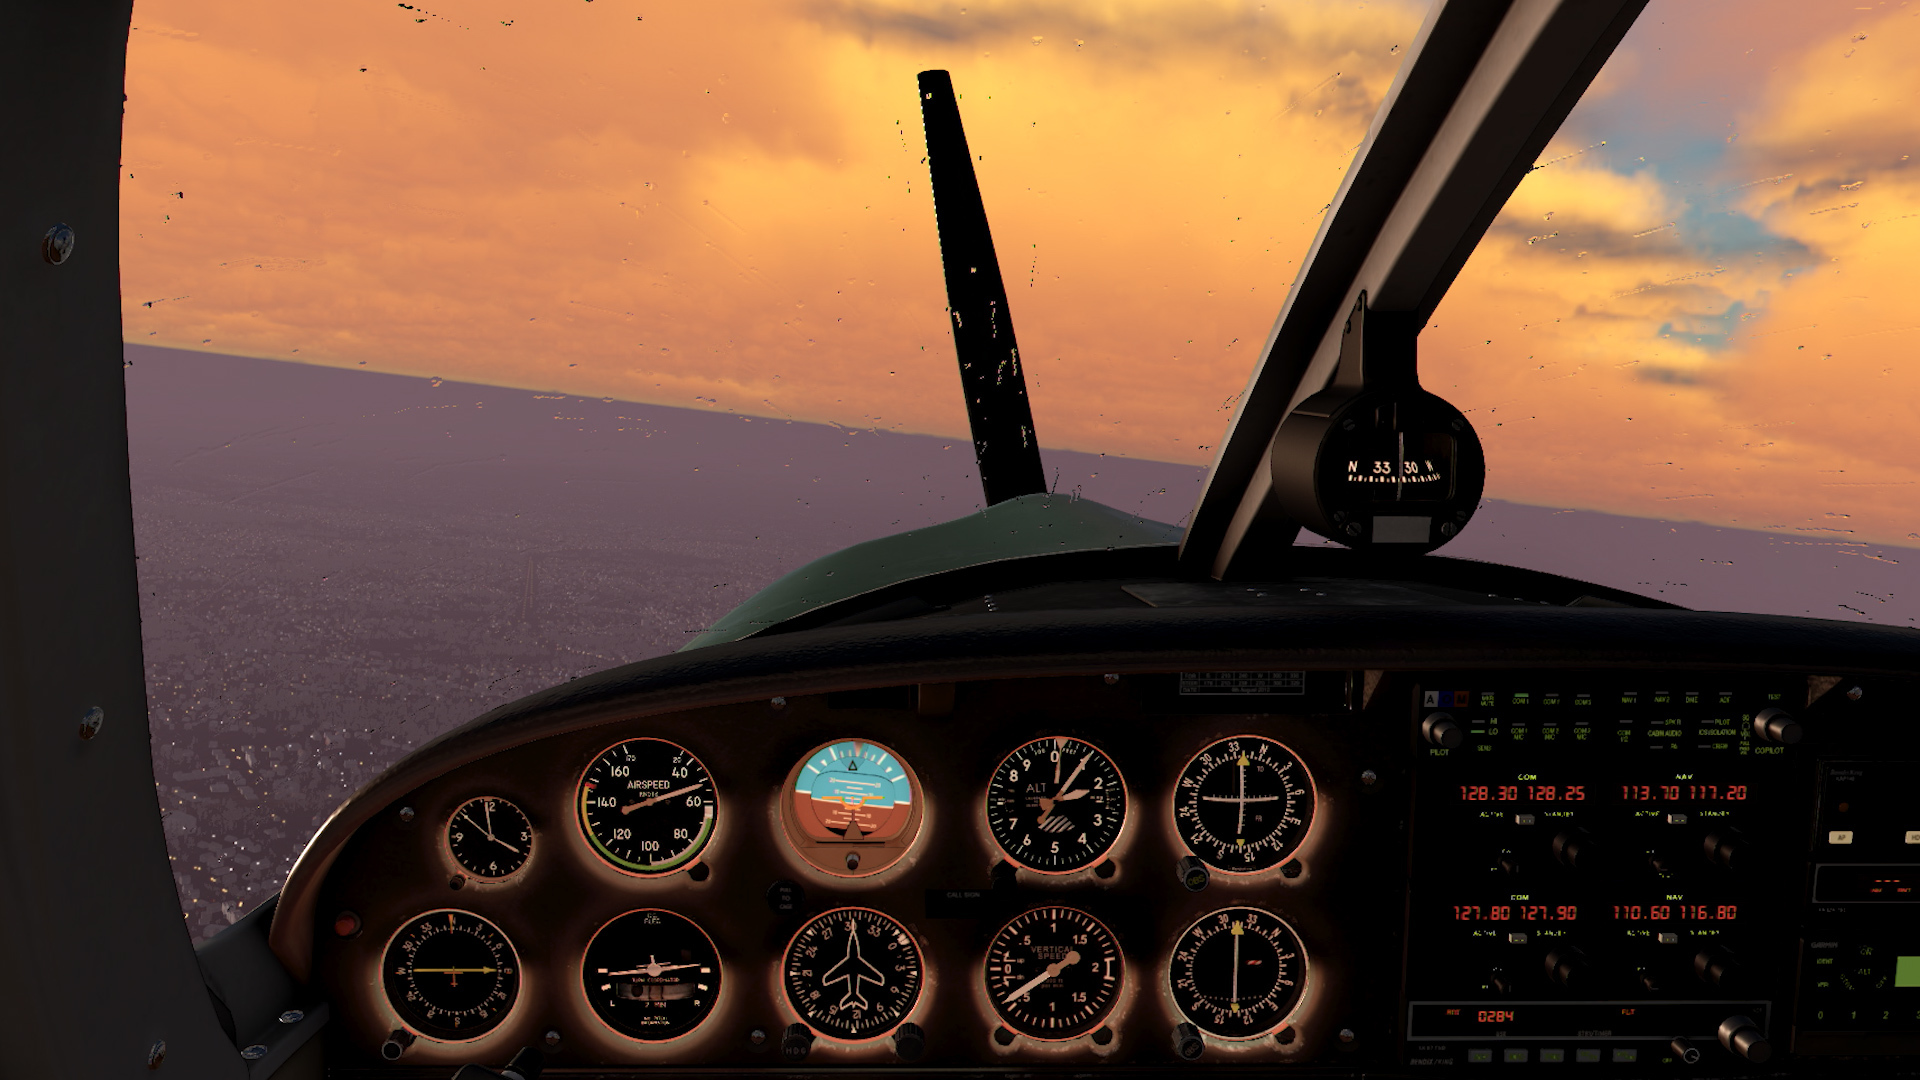 News All Make Yourself Visible To Others When Your Flying Strobe Lights Here At Dtg Towers We Are Getting Pretty Excited About Dynamic Weather V1 Coming Flight Sim World Tomorrow